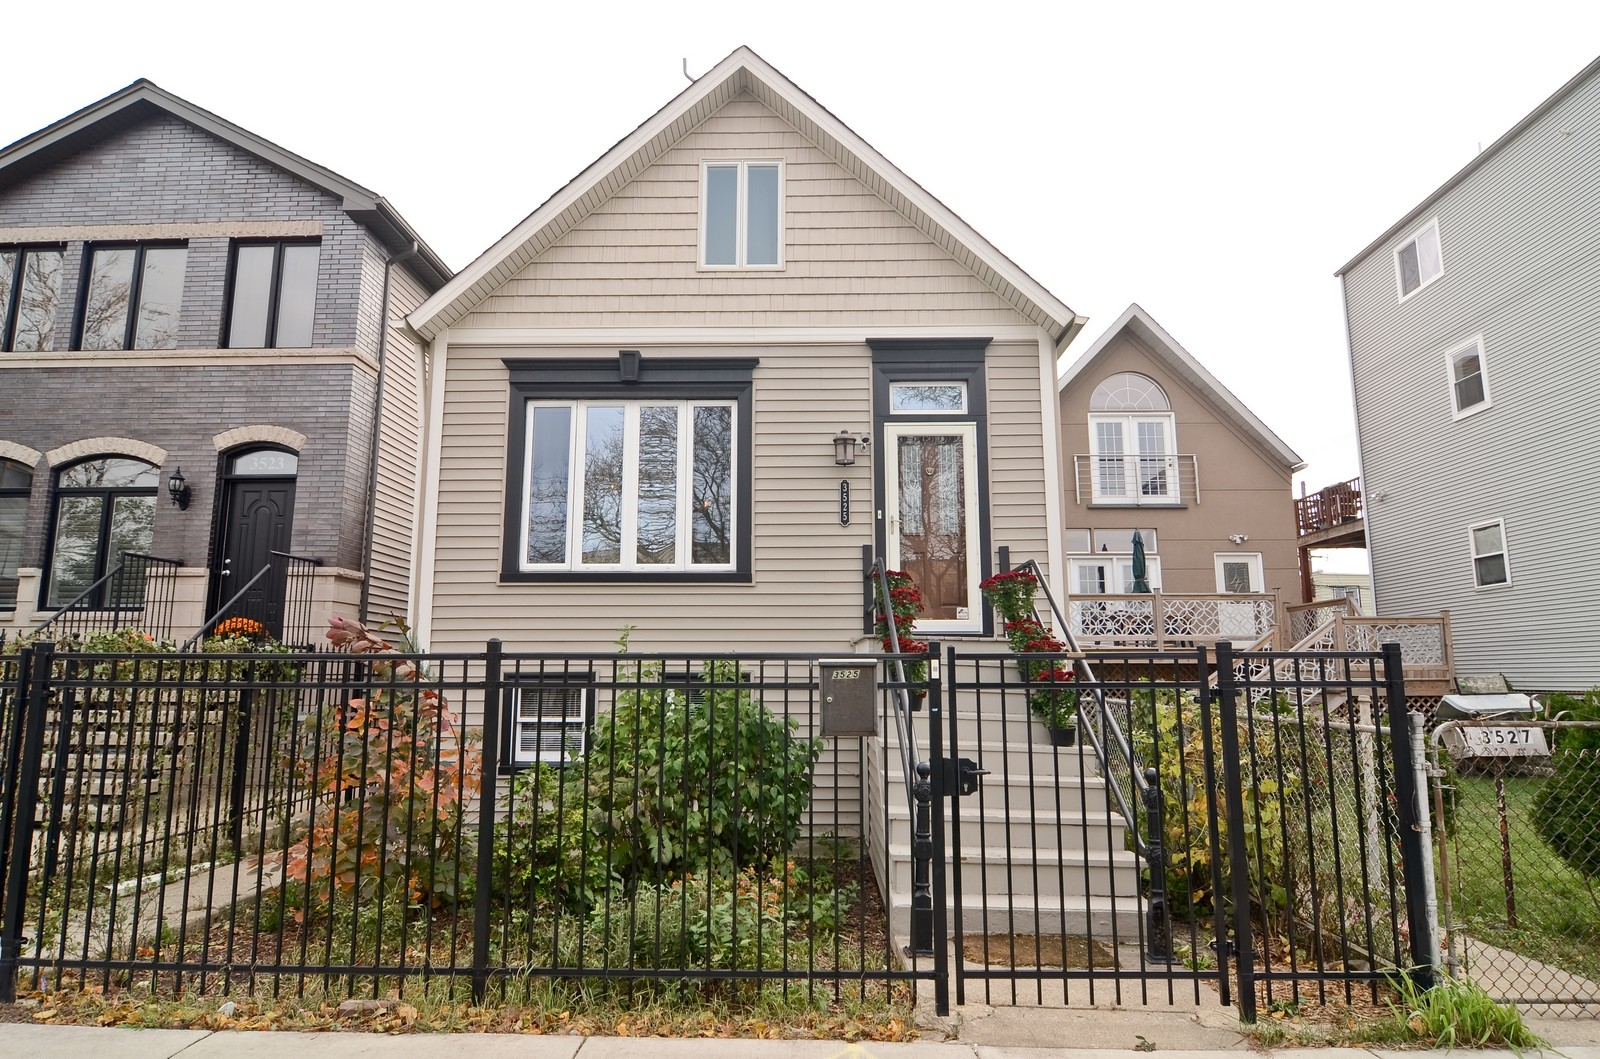 Real Estate Photography - 3525 W Wollfram, Chicago, IL, 60618 - Front View